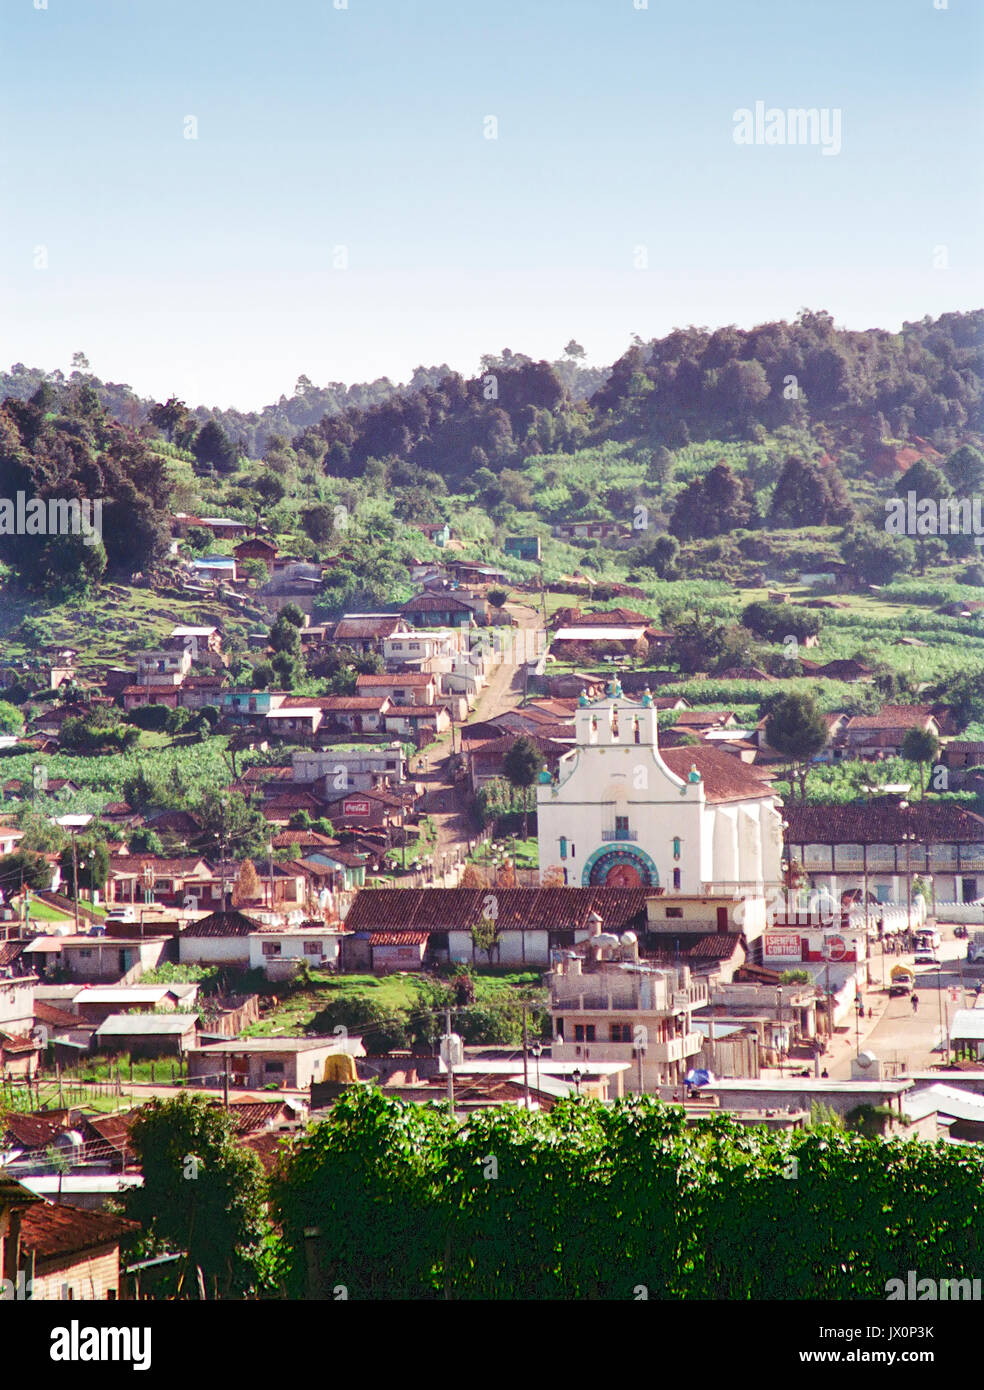 Looking over the small village of San Juan Chamula in Chiapas, Mexico. - Stock Image